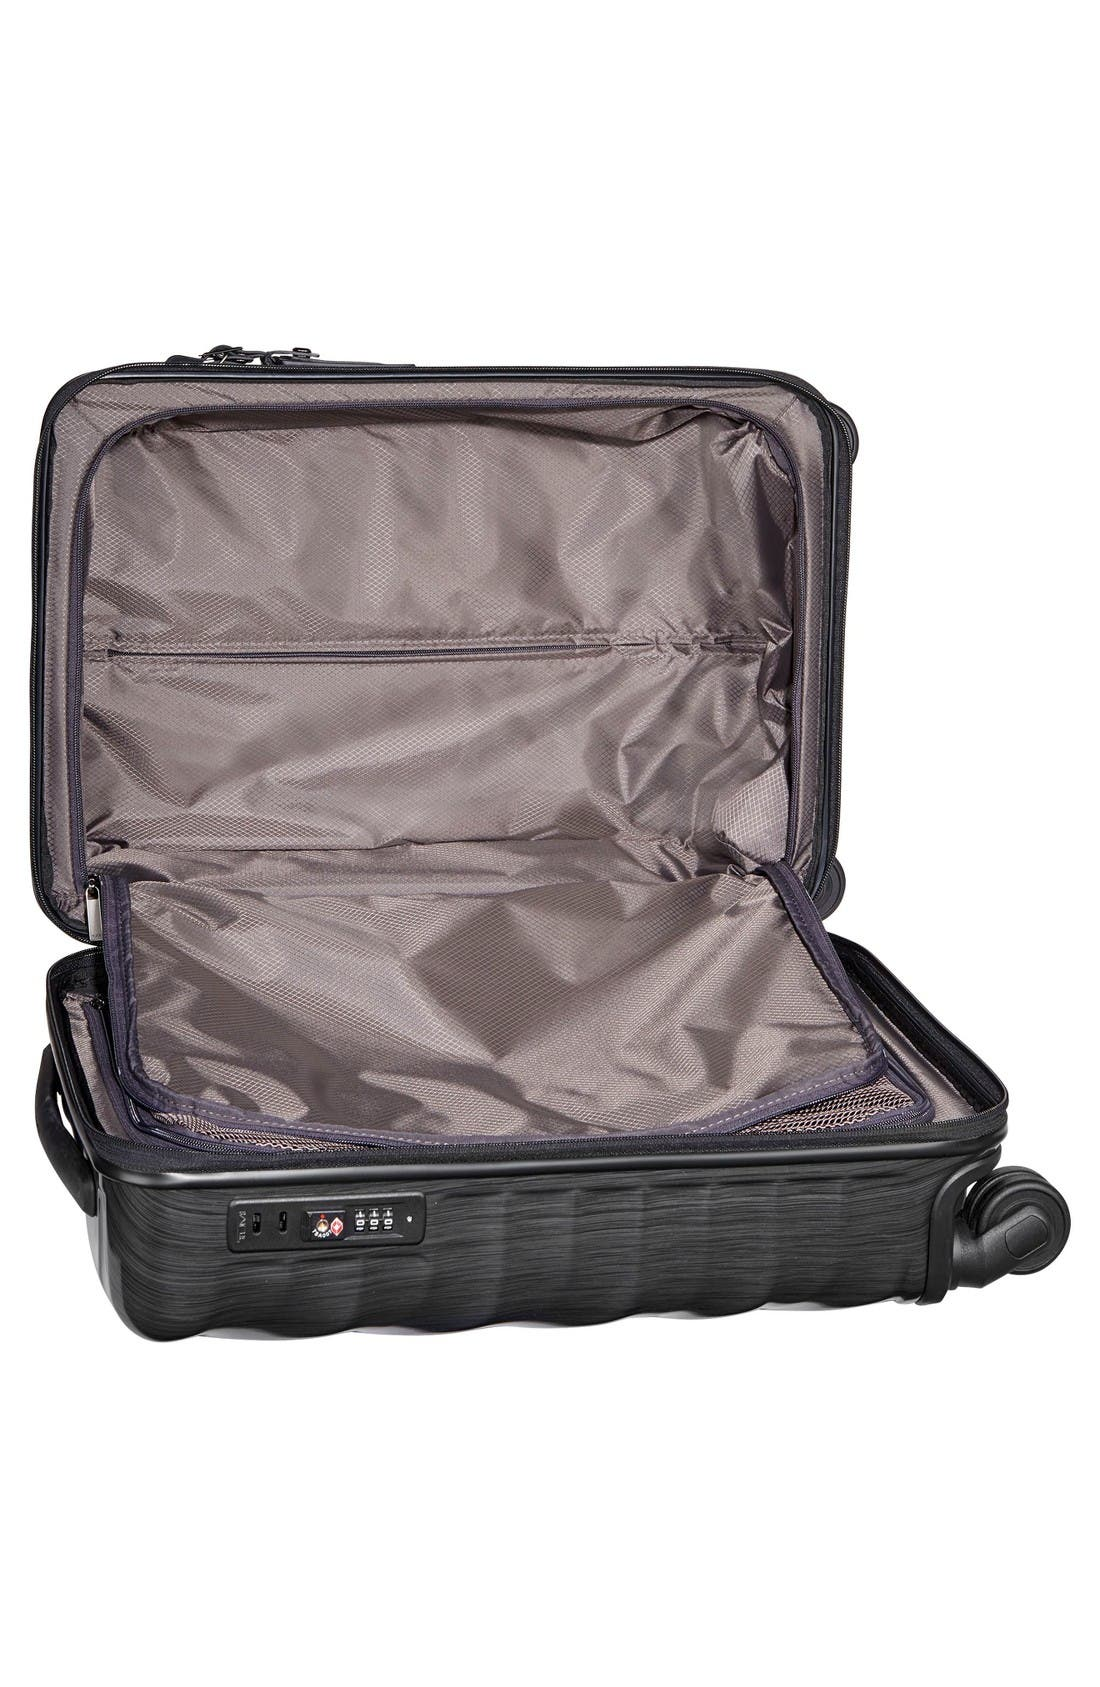 Alternate Image 3  - Tumi 19 Degree 21 Inch International Wheeled Carry-On